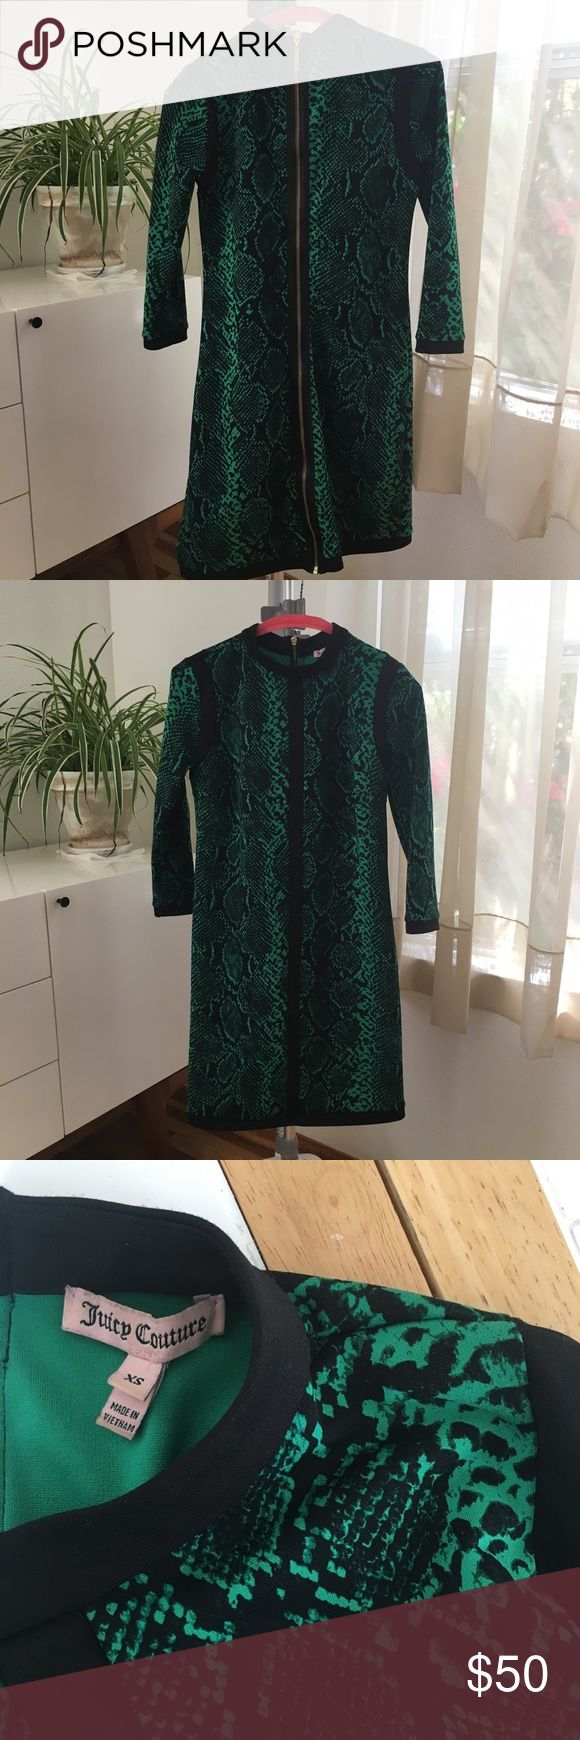 Emerald Green Snake Print Dress Emerald Green Snake Print Dress by #juicycouture it has 3/4 inch sleeves and a gold back zipper that goes the length of the dress. #snakeprint #goldzippers #green Juicy Couture Dresses Mini